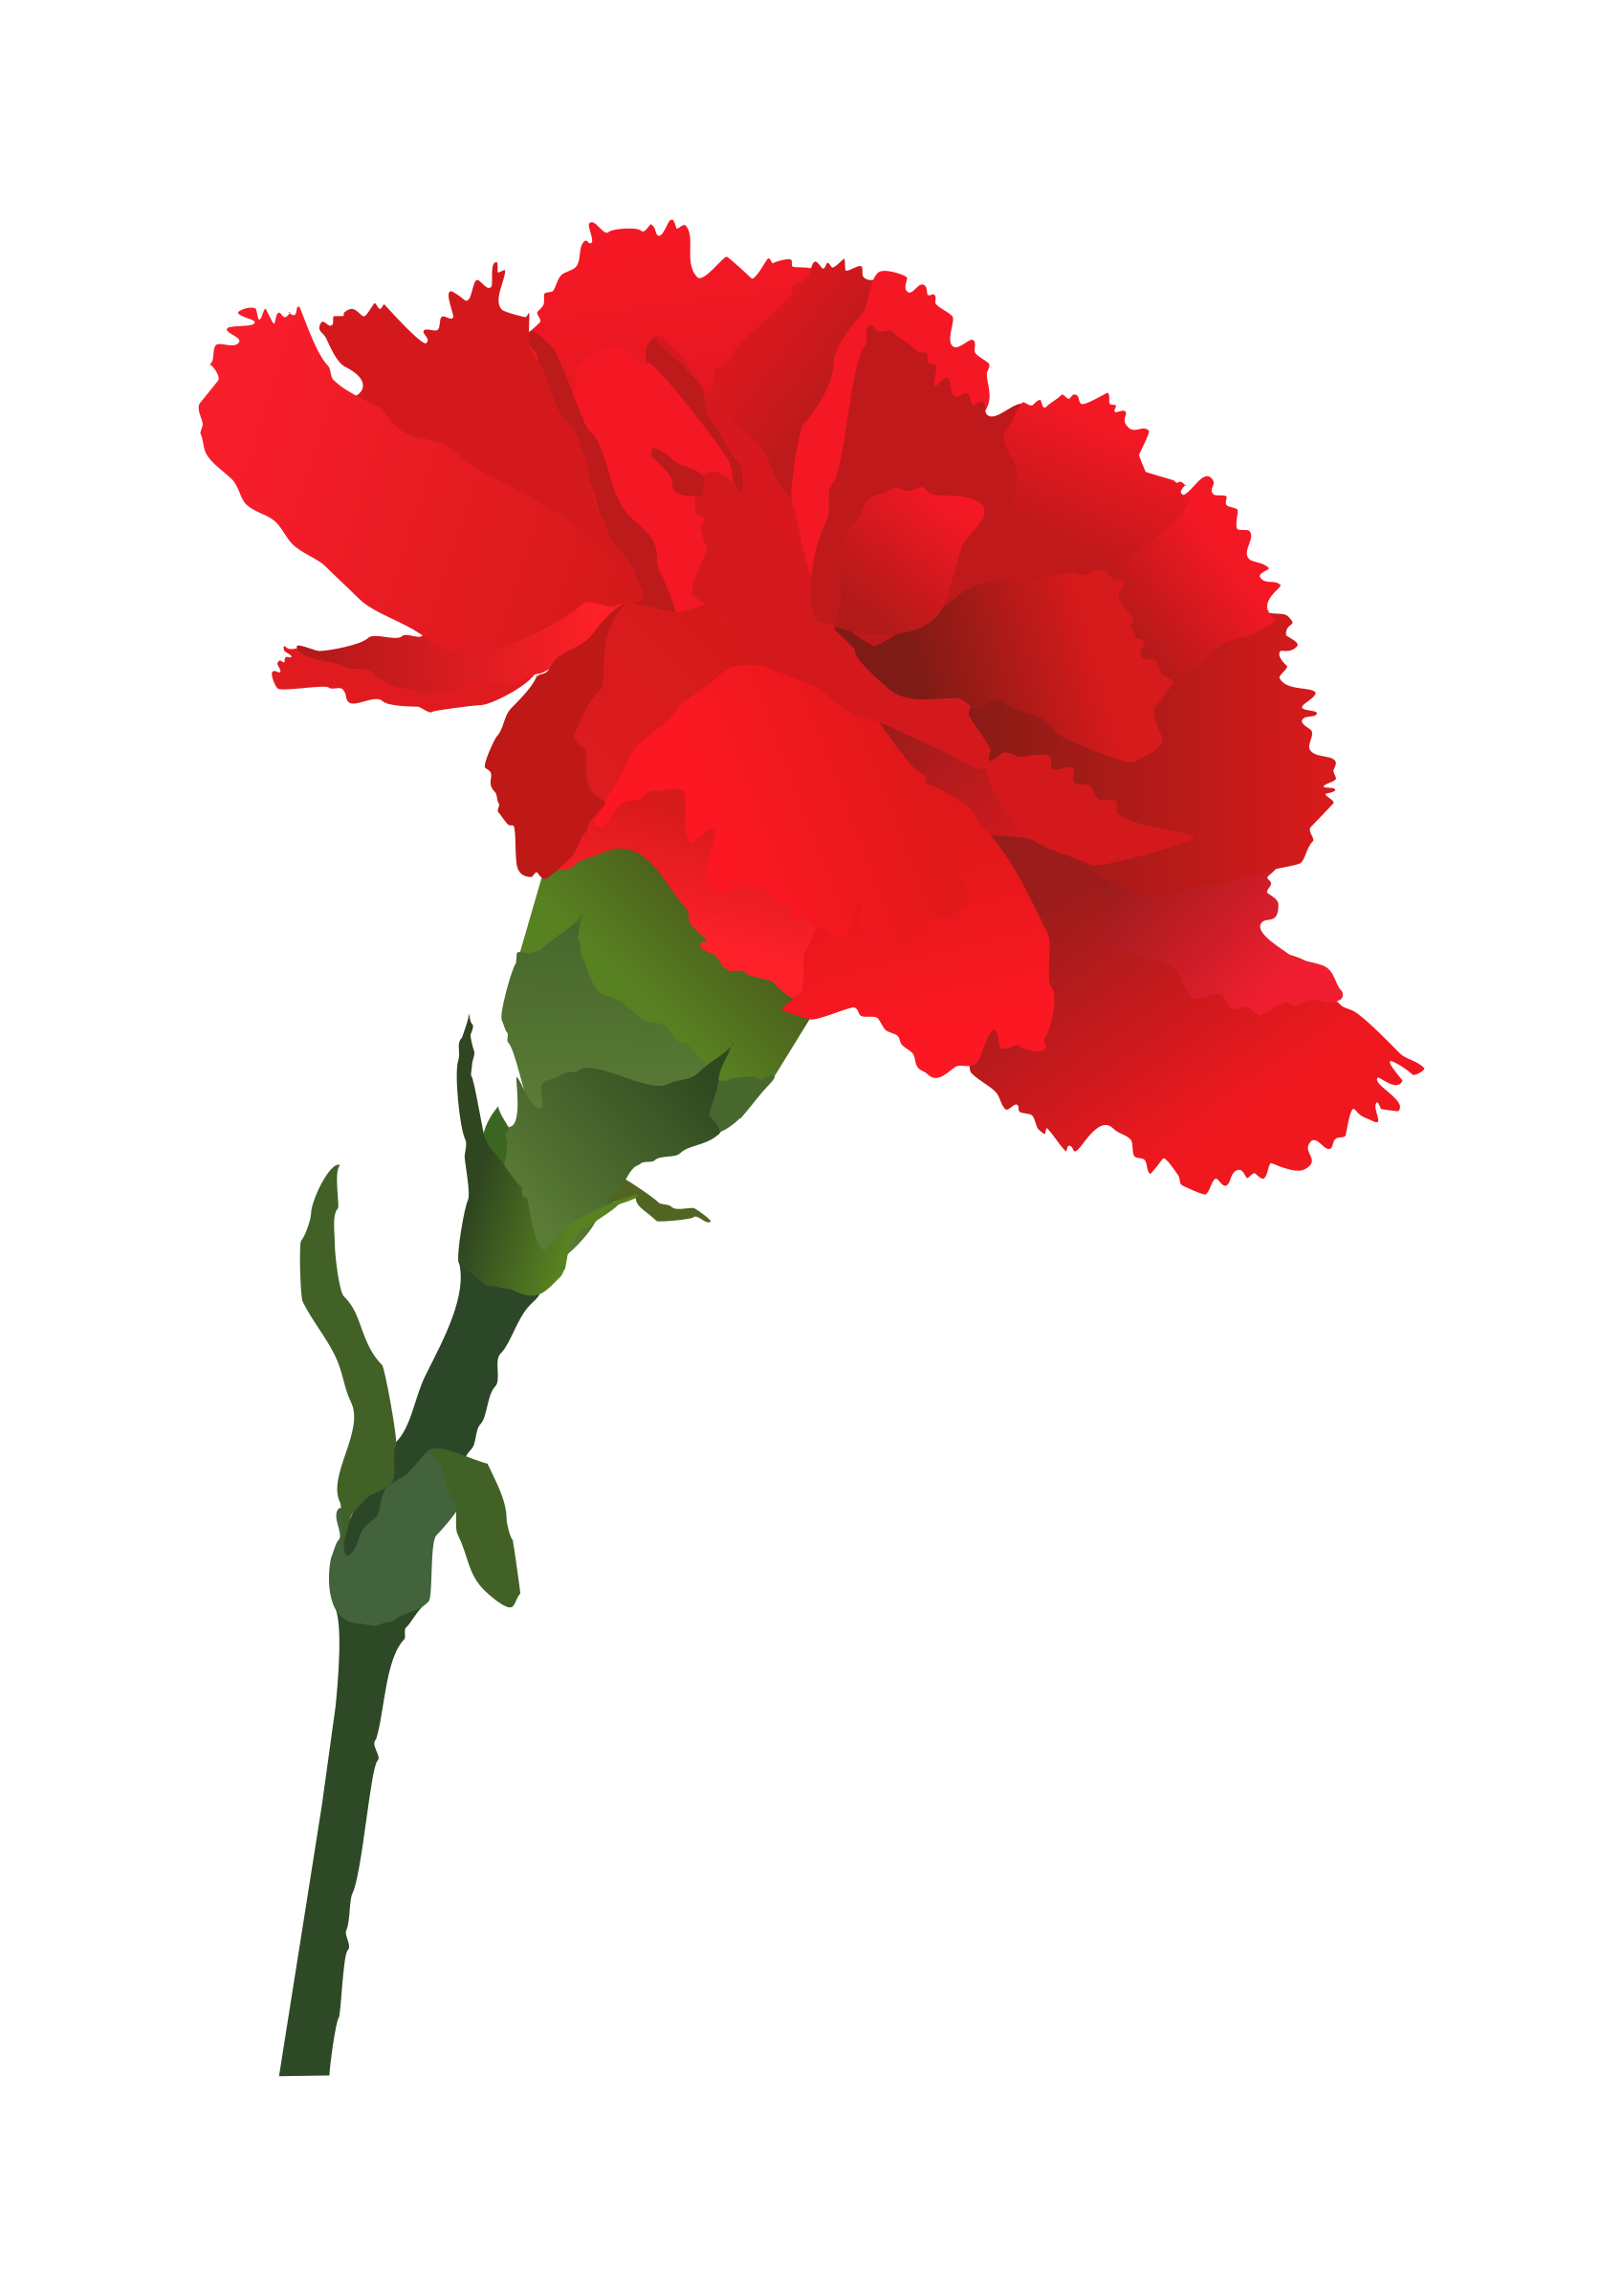 rose vector clipart.-rose vector clipart.-5